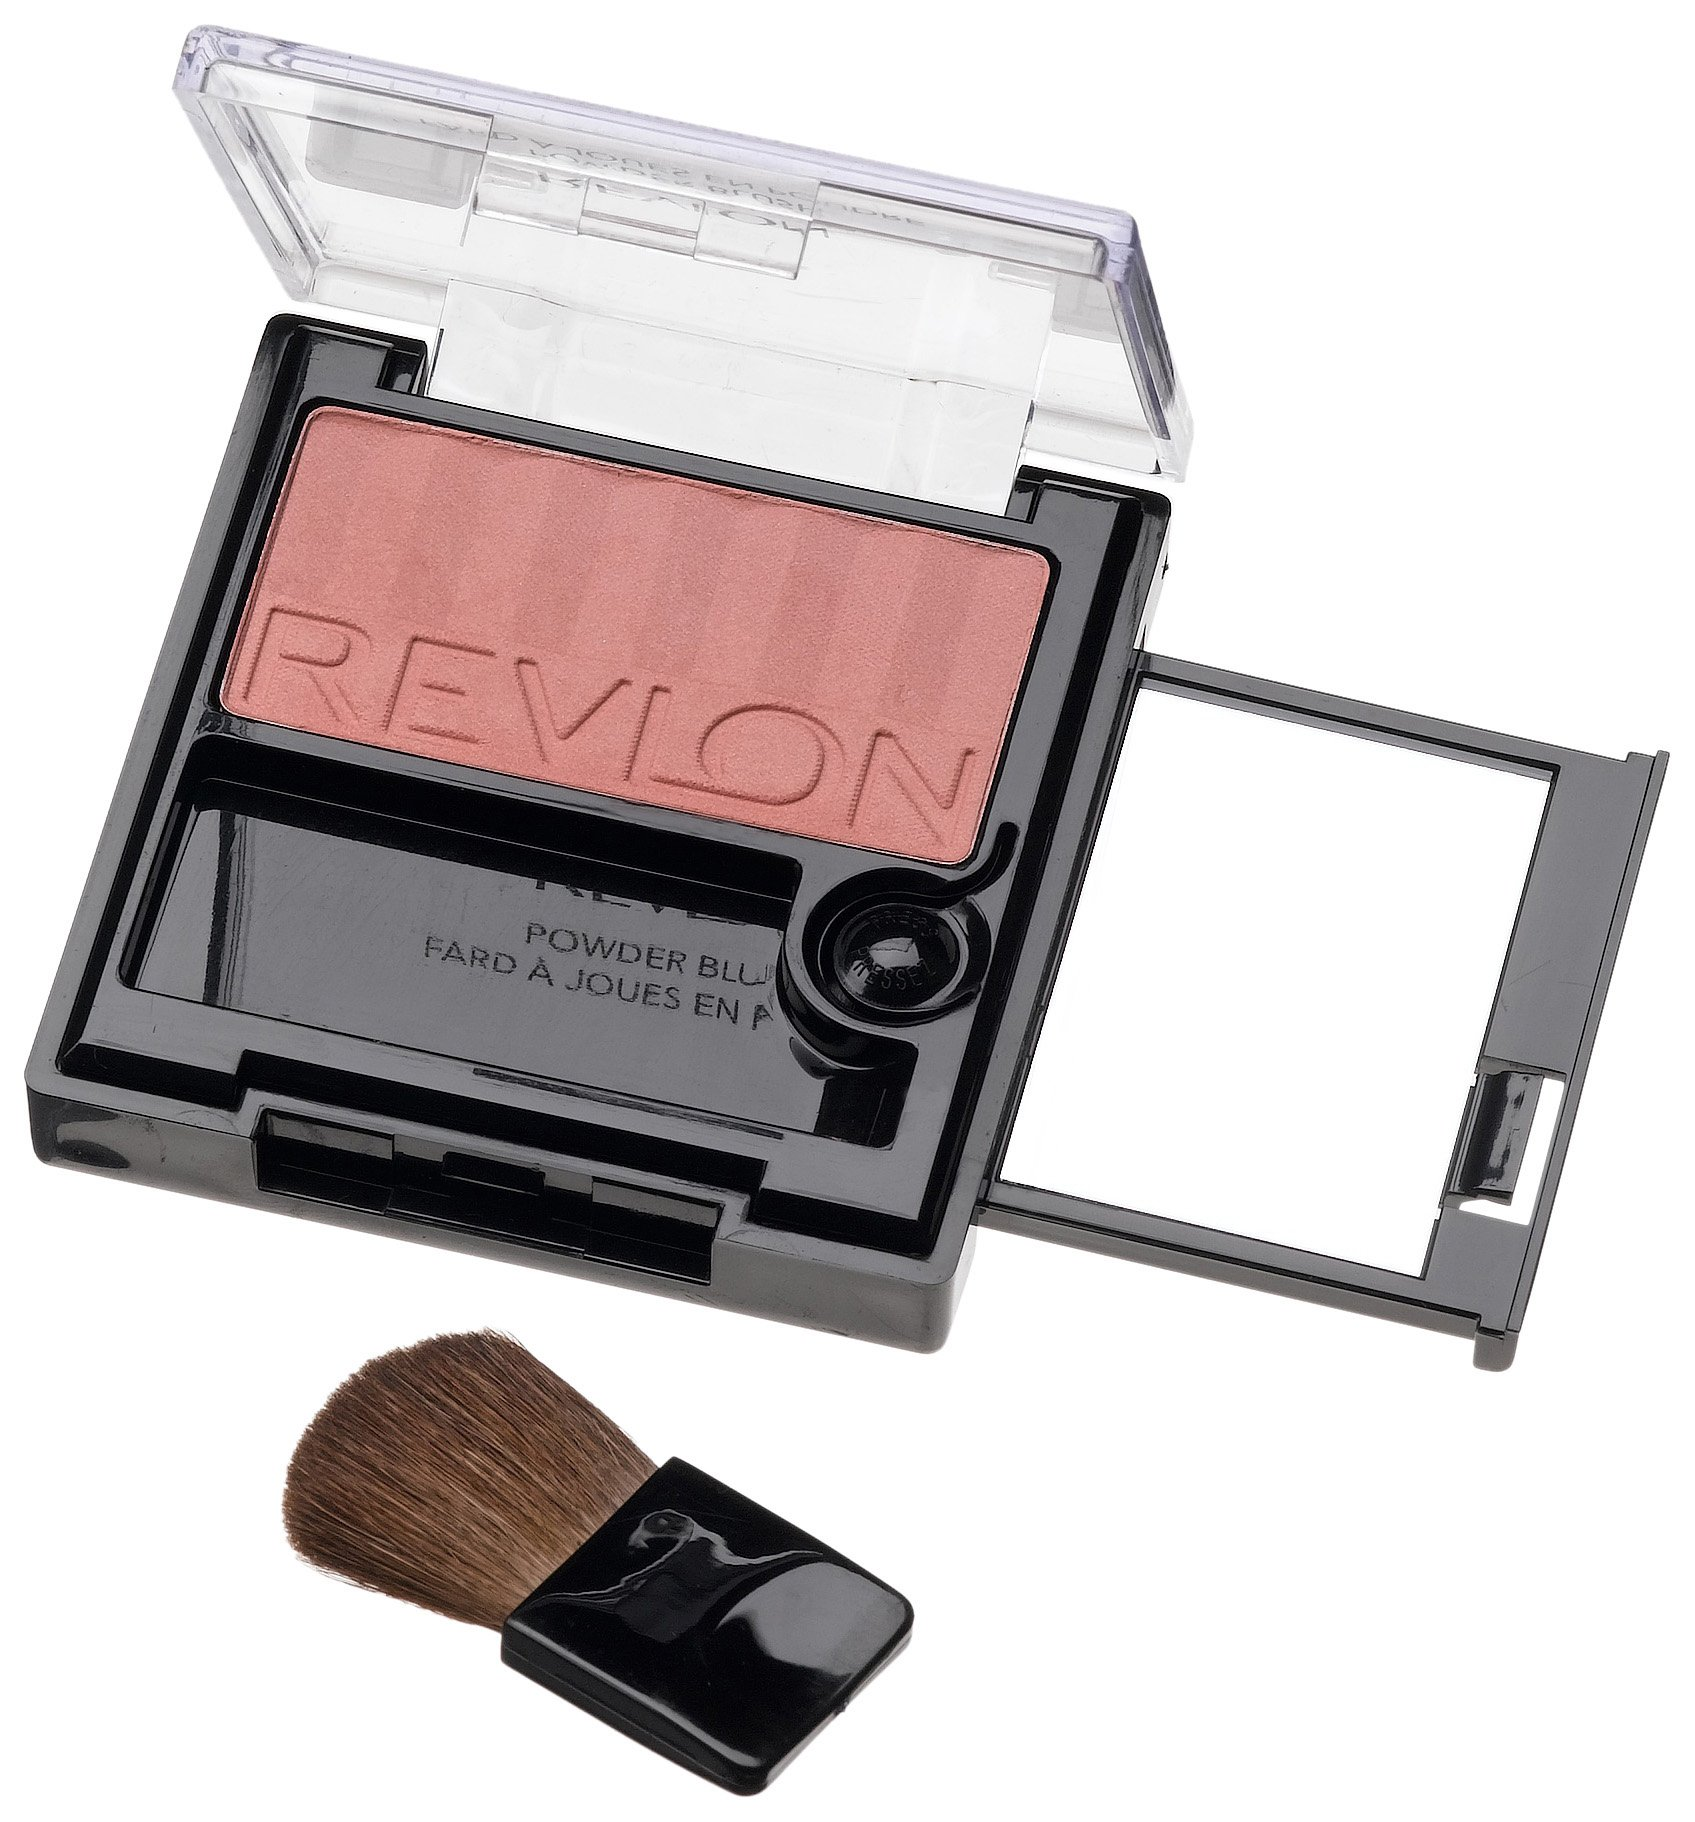 Revlon Powder Blush, Softspoken Pink 04, 0.18 Ounce (Pack of 2)